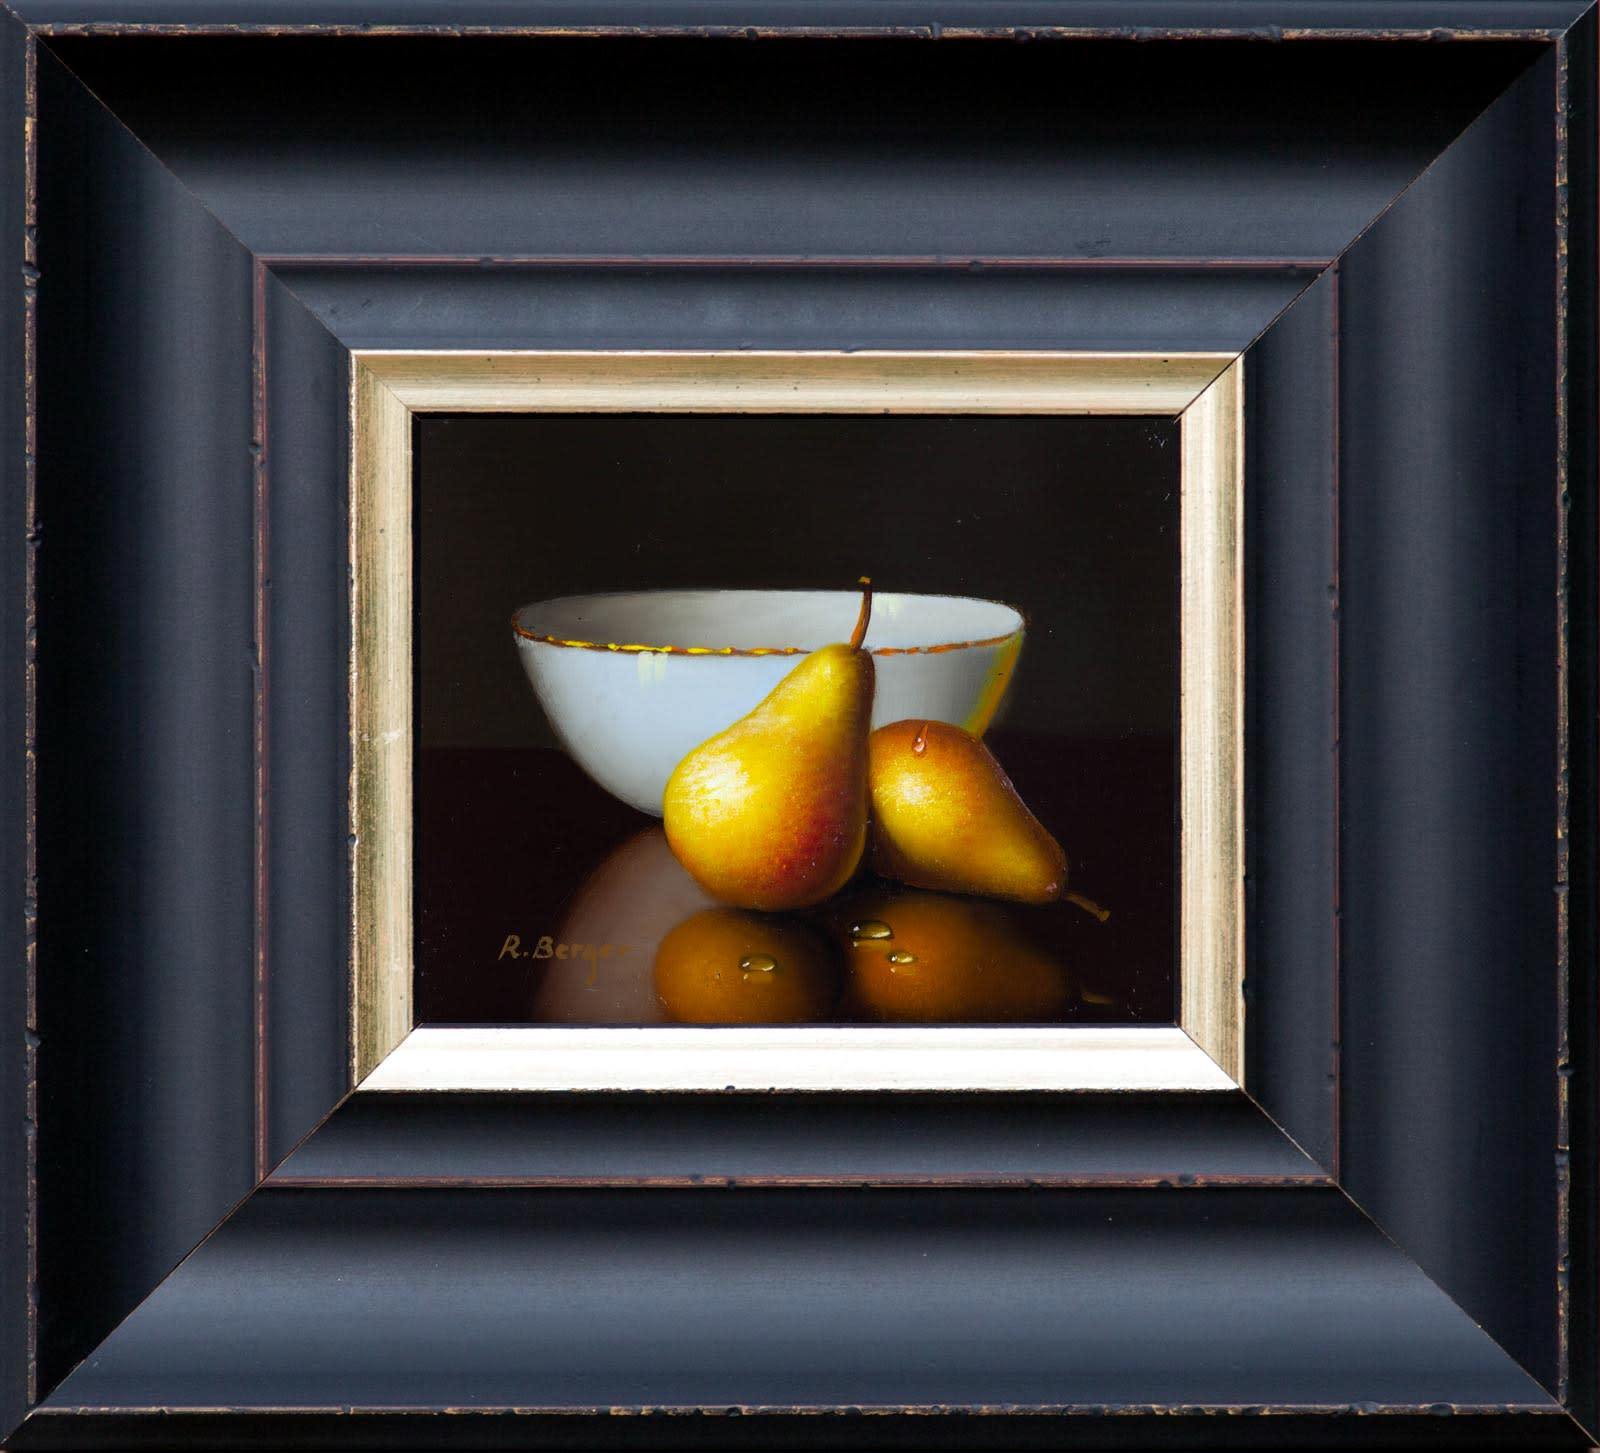 Two Pears, Ronald Berger